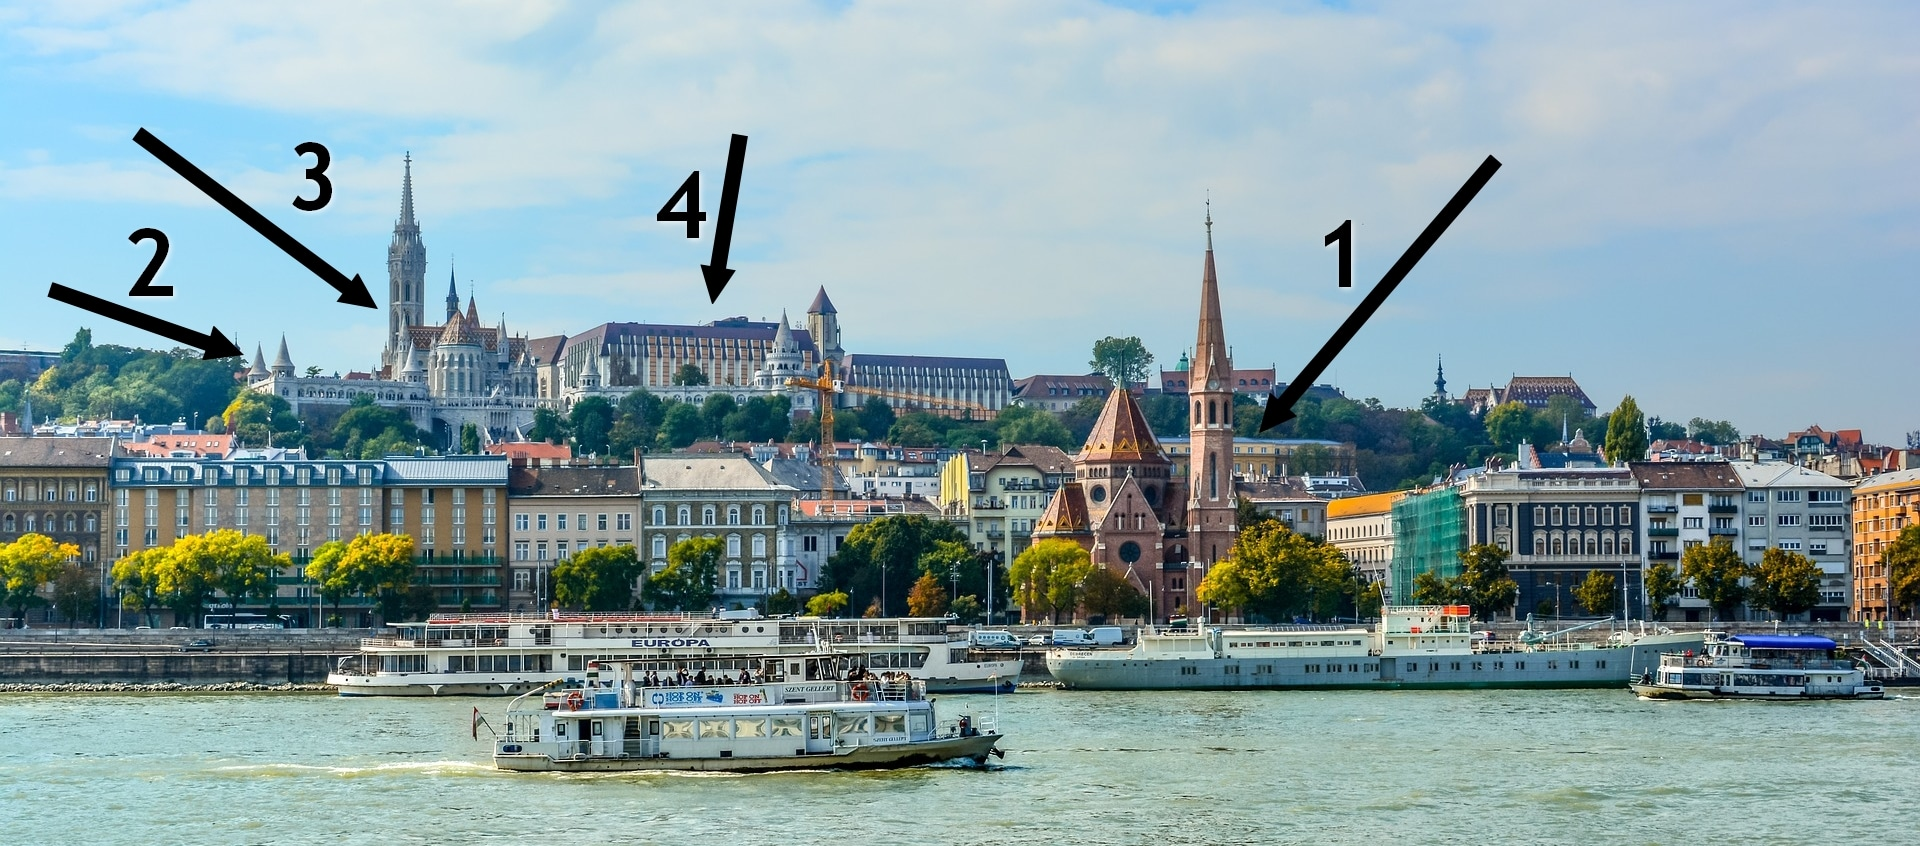 Panorama towards the Buda side from tram line 2 - Source: Pixabay